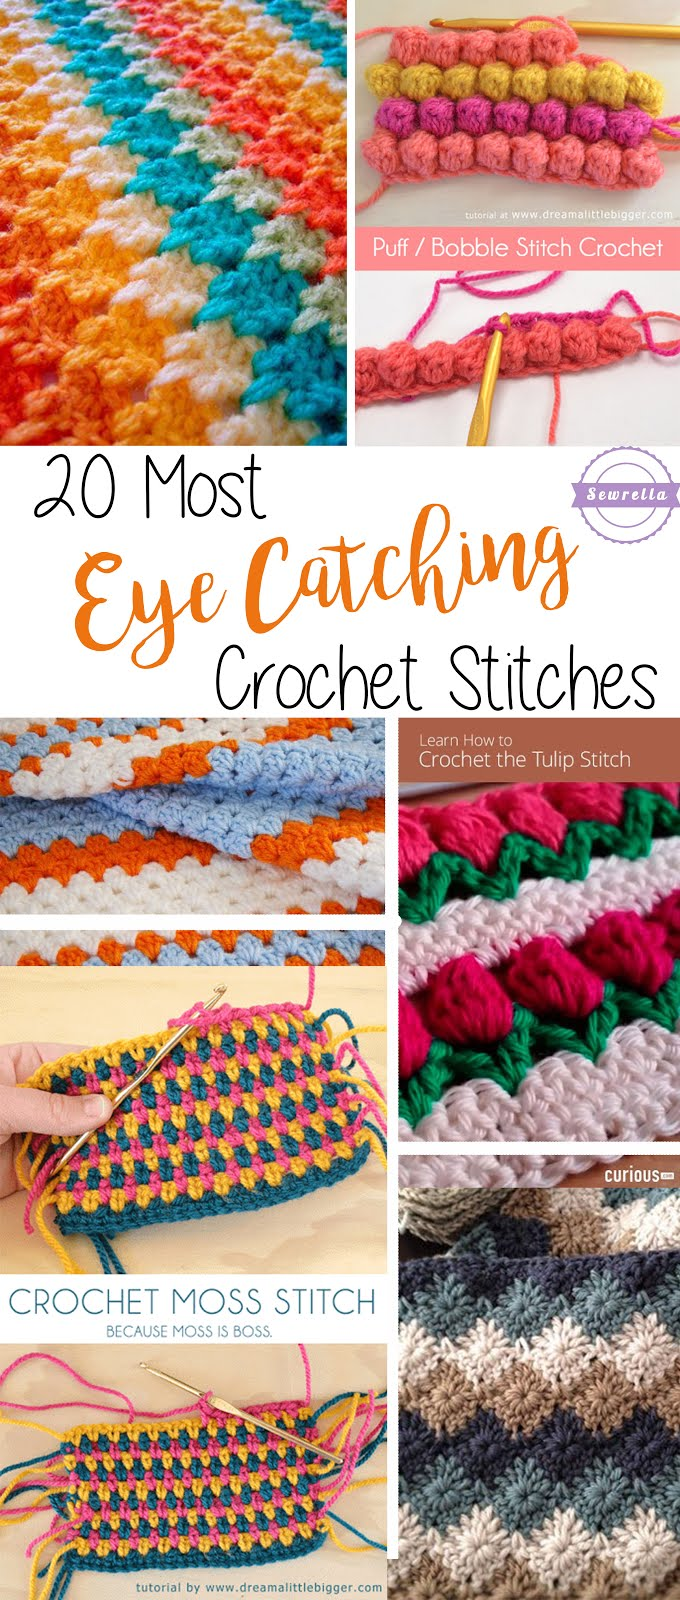 Cool Crochet Patterns